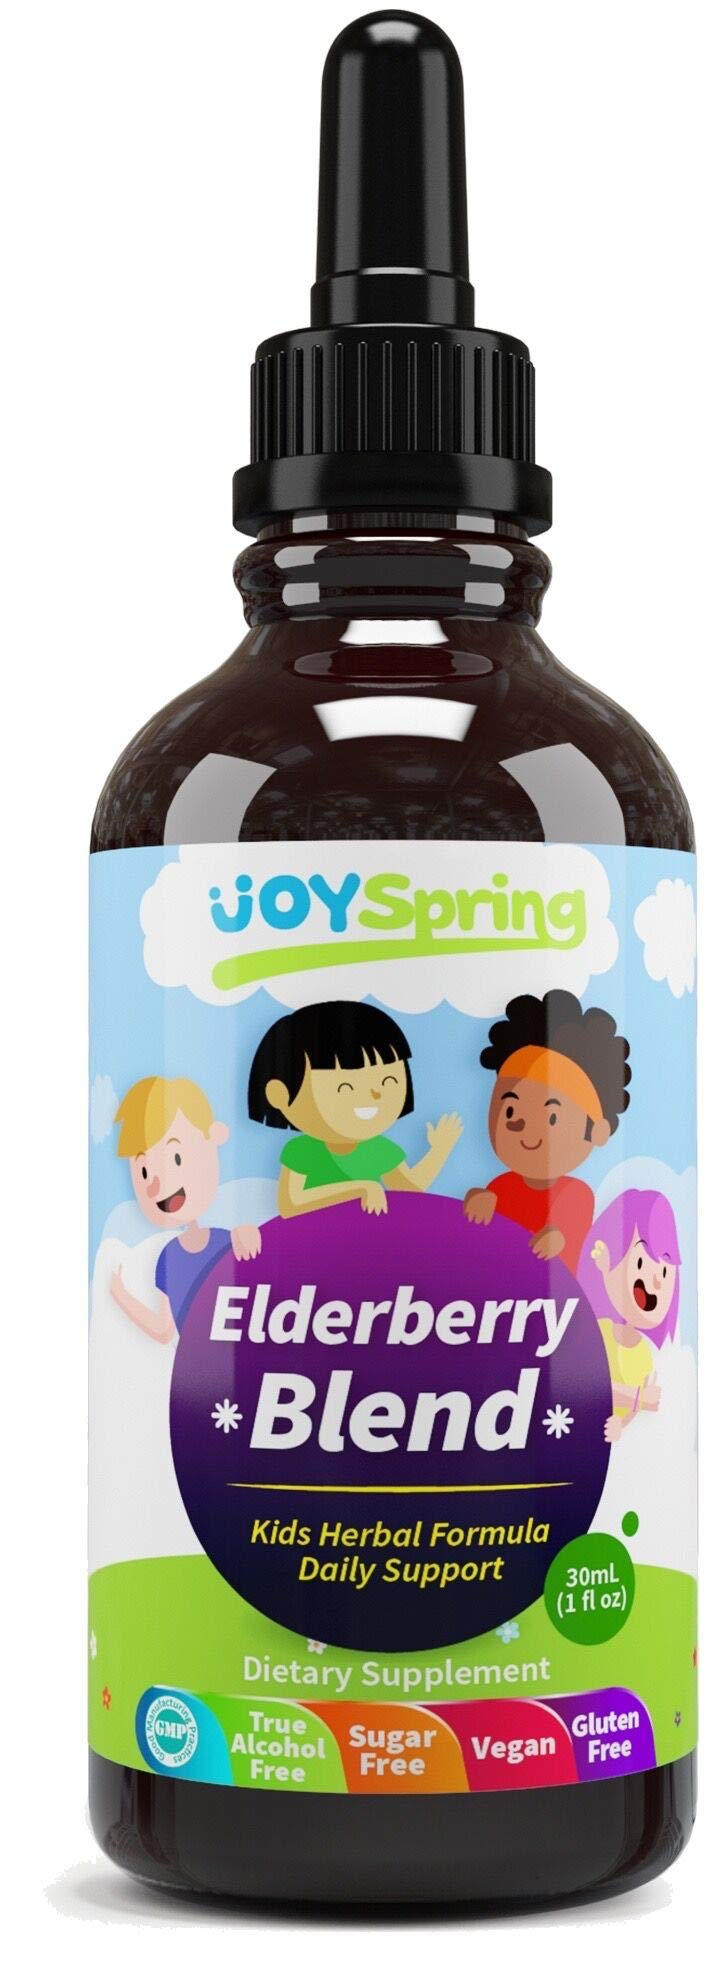 Organic Elderberry Syrup for Kids - Best Natural Kids Cold Medicine, Pure Elderberry Blend for Sickness Relief, 3x Stronger Vegan & Sugar-Free Formula to Strengthen Immune System & Avoid Getting Sick by JoySpring